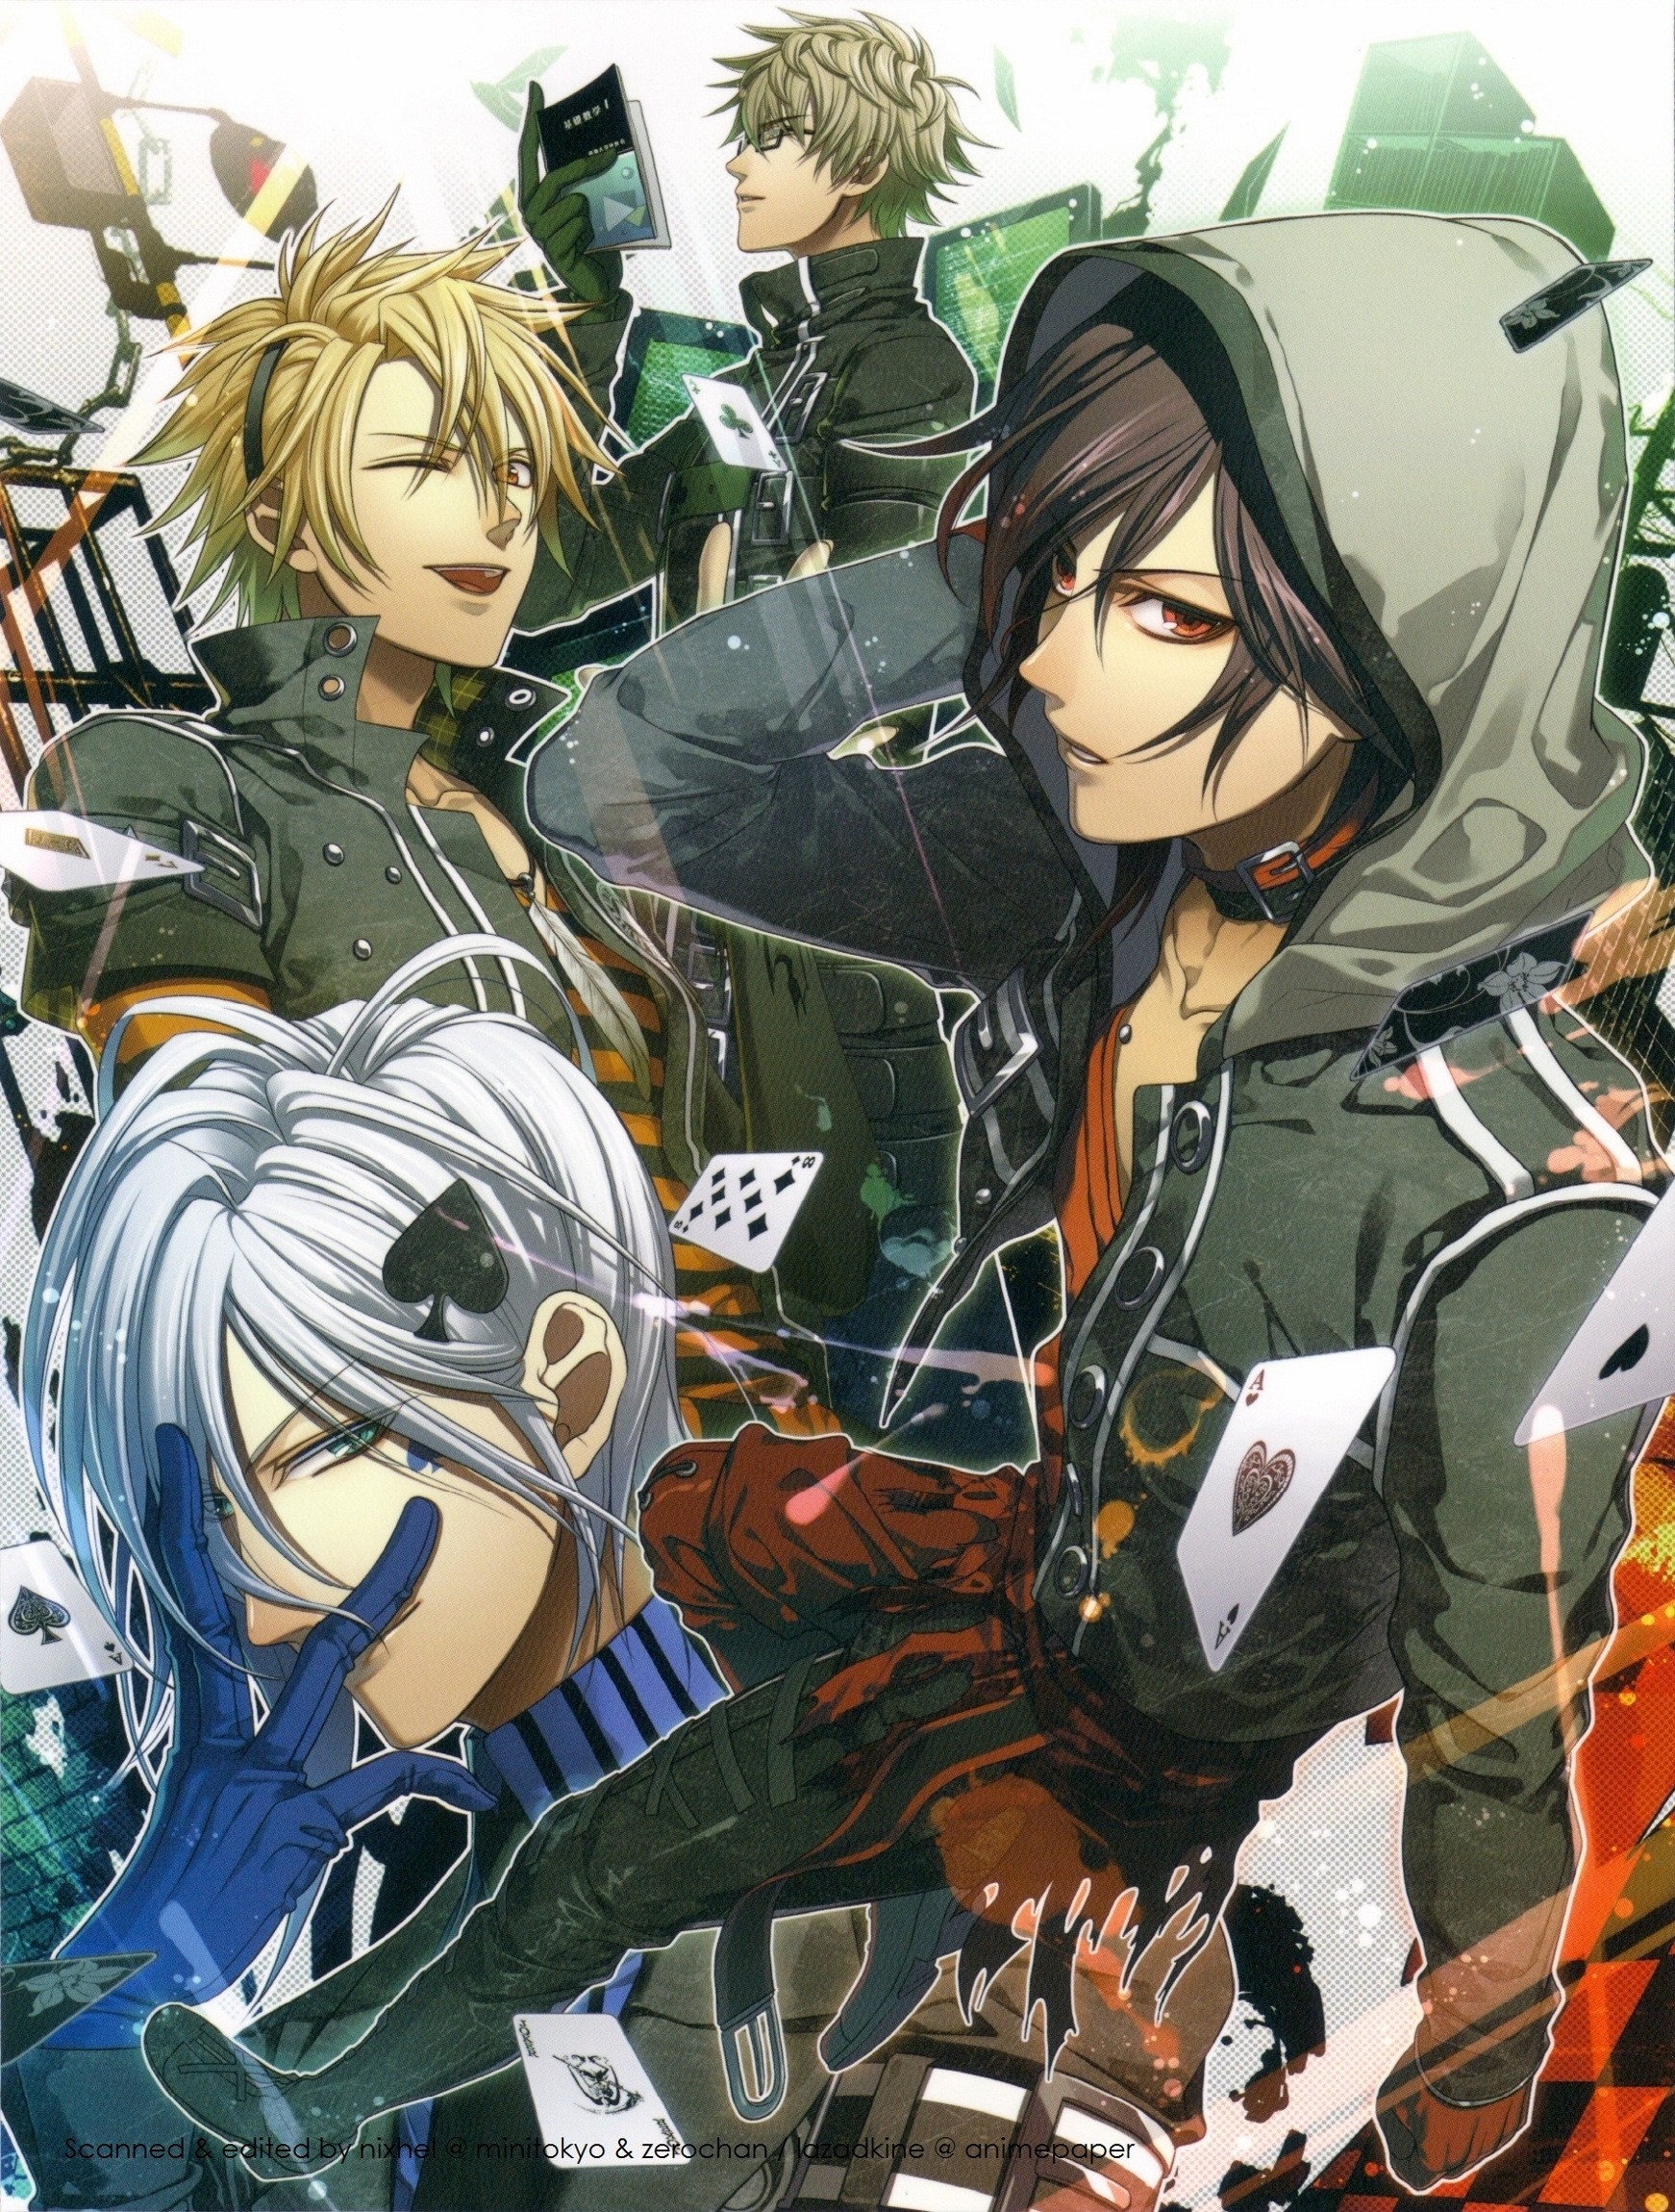 Anime characters from Amnesia